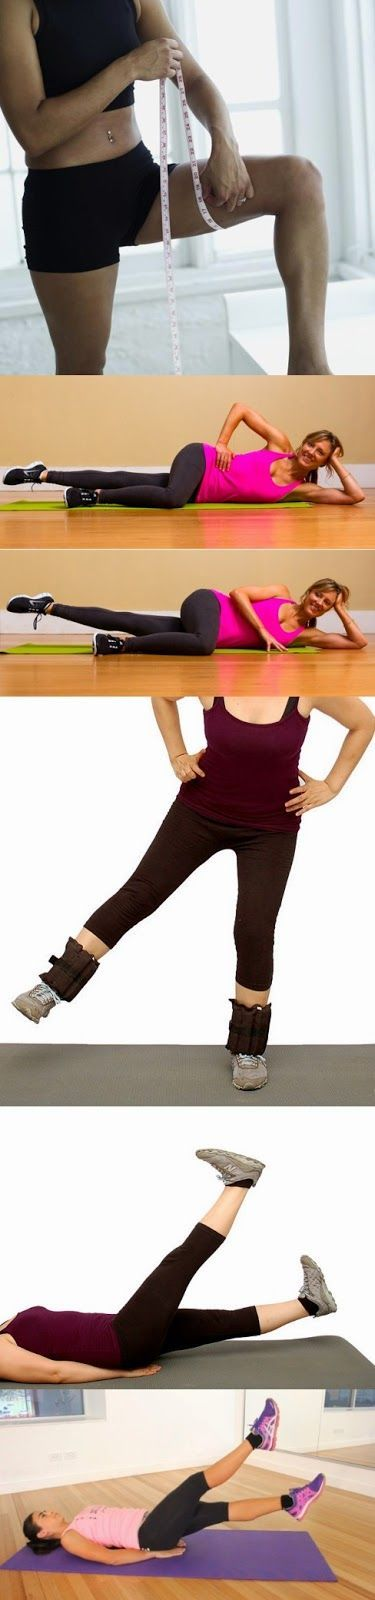 How to Get Rid of Inner Thigh Fat without going to Gym - 3 Simple Exercises          These 3 simple yet effective exercises have been proven to get rid of inner thigh fat quickly, with ease. Some have reported seeing noticeable results in as little as two weeks. Workout moves that use body weight not only burn fat, but they are also known for removing cellulite dimples as well.     http://guidetocreatingspaproducts.blogspot.com/